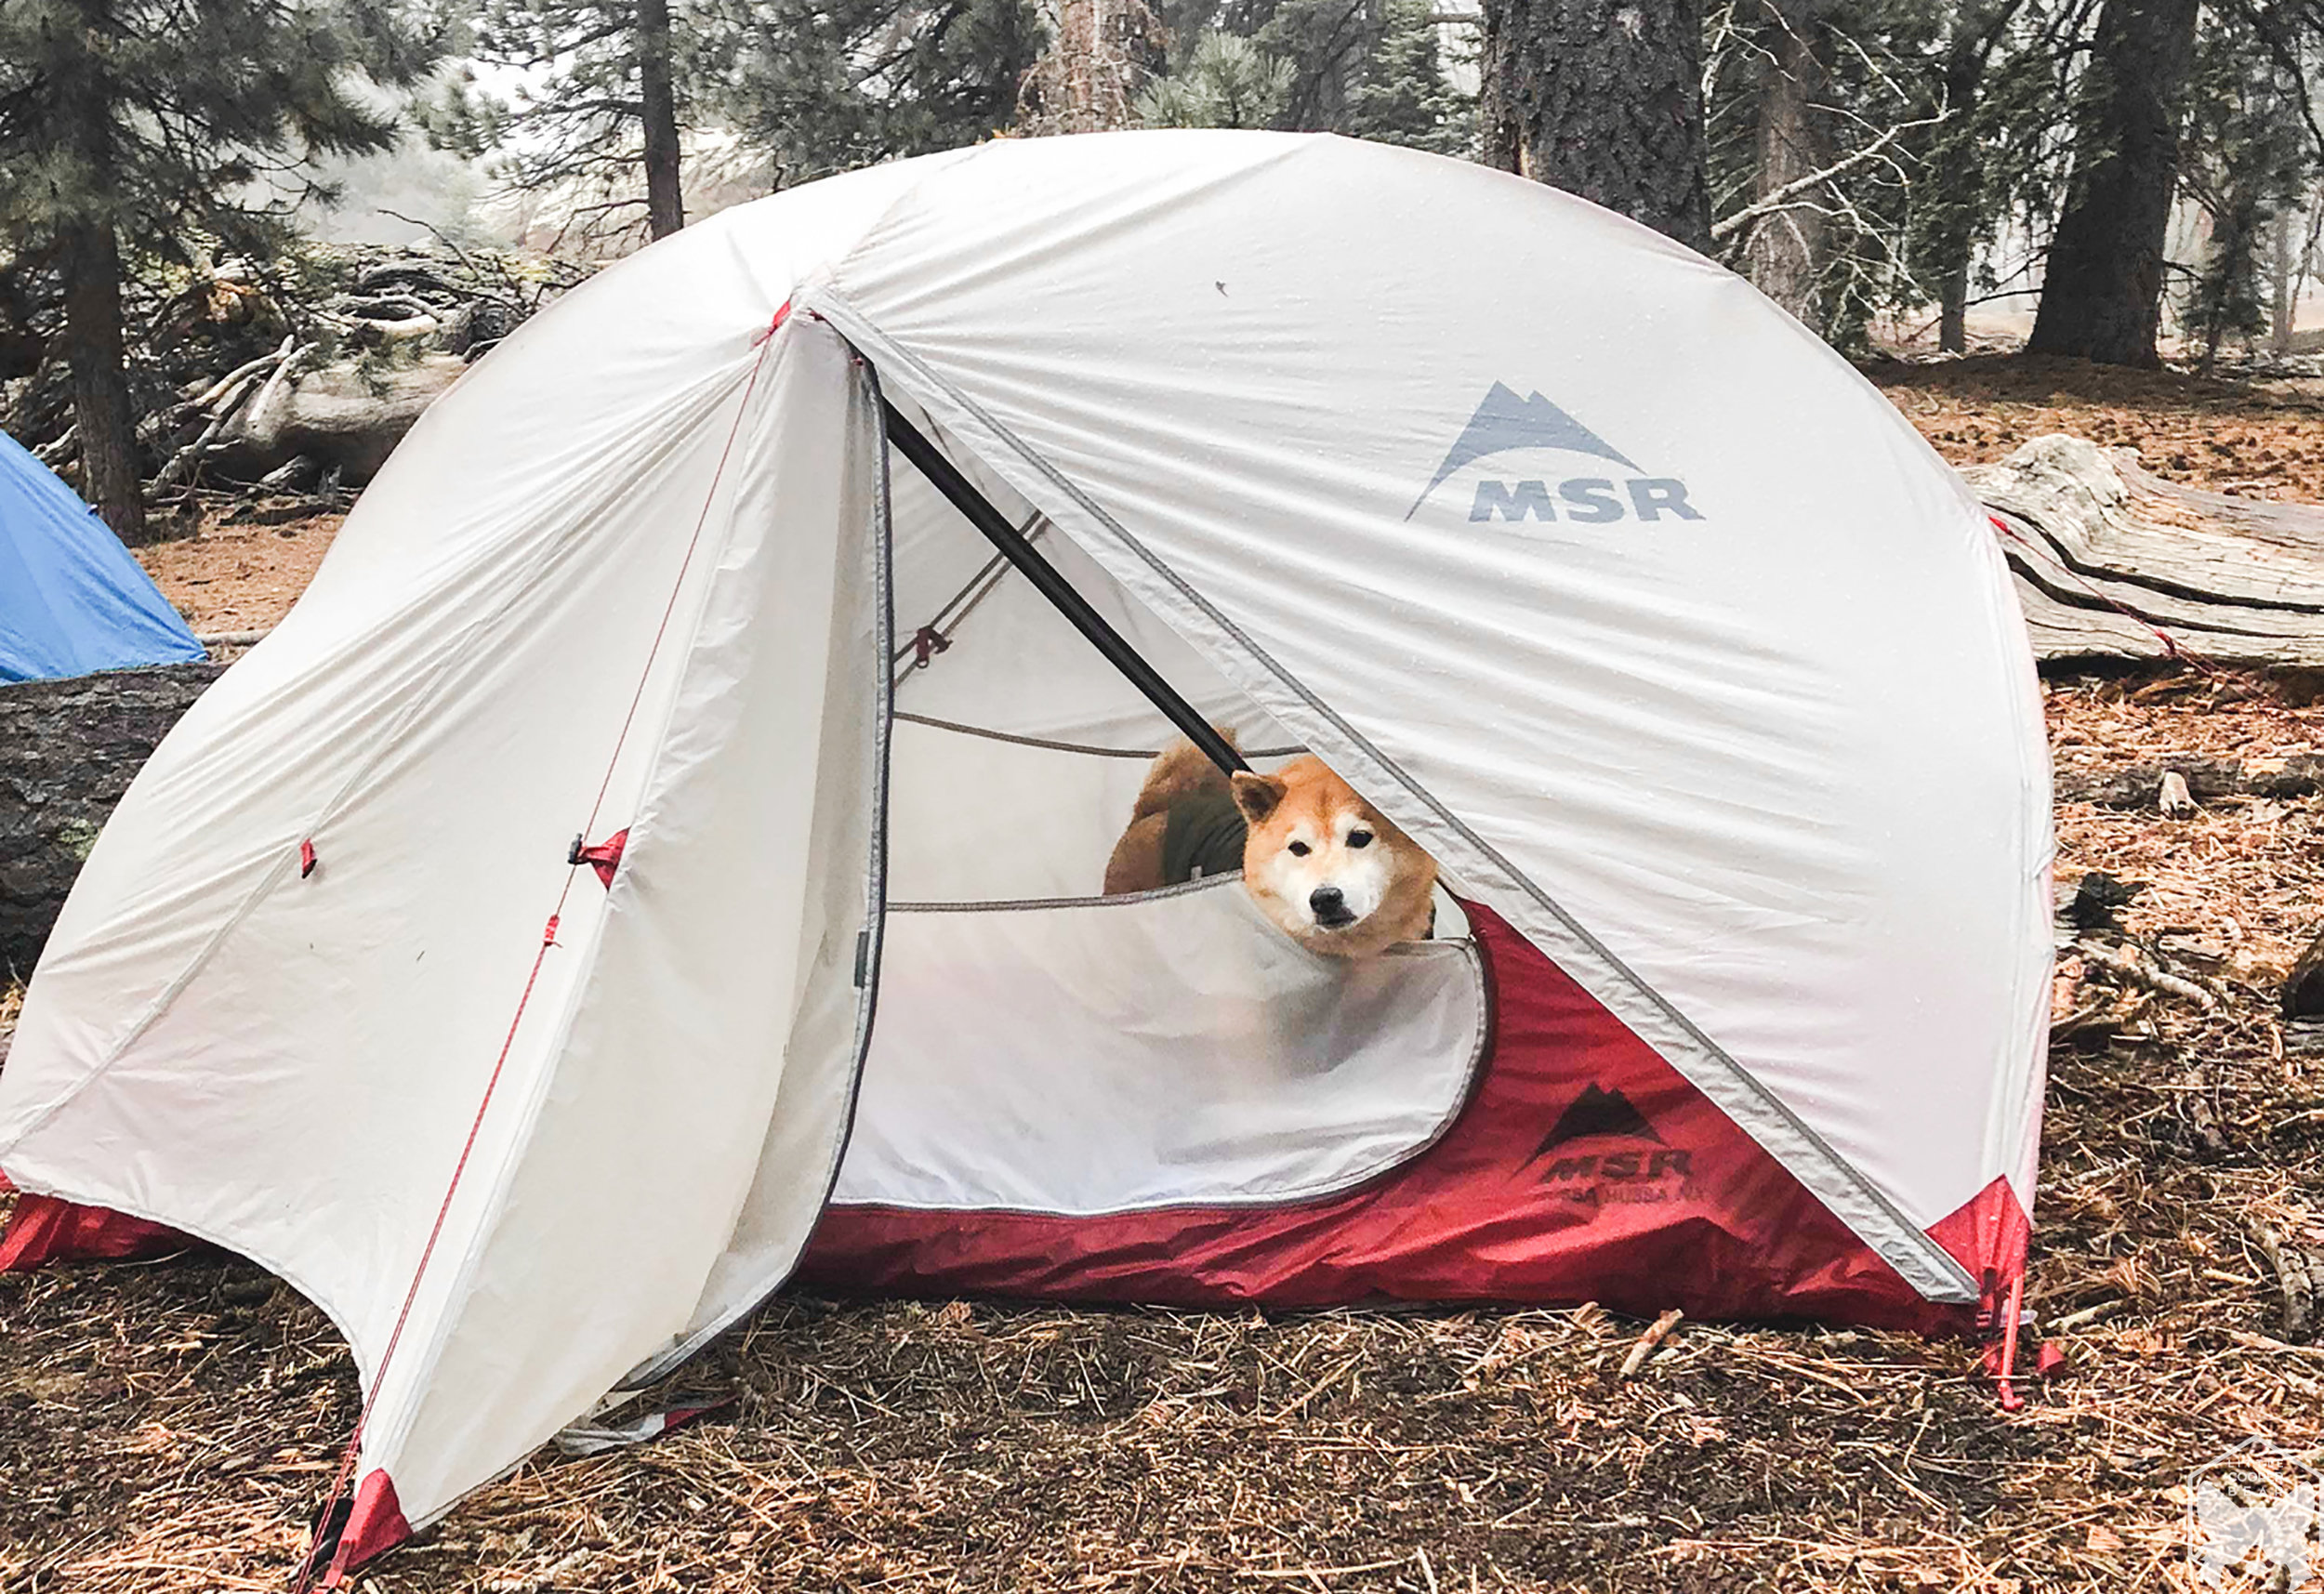 Hoku  decided he'll just stay in the tent.